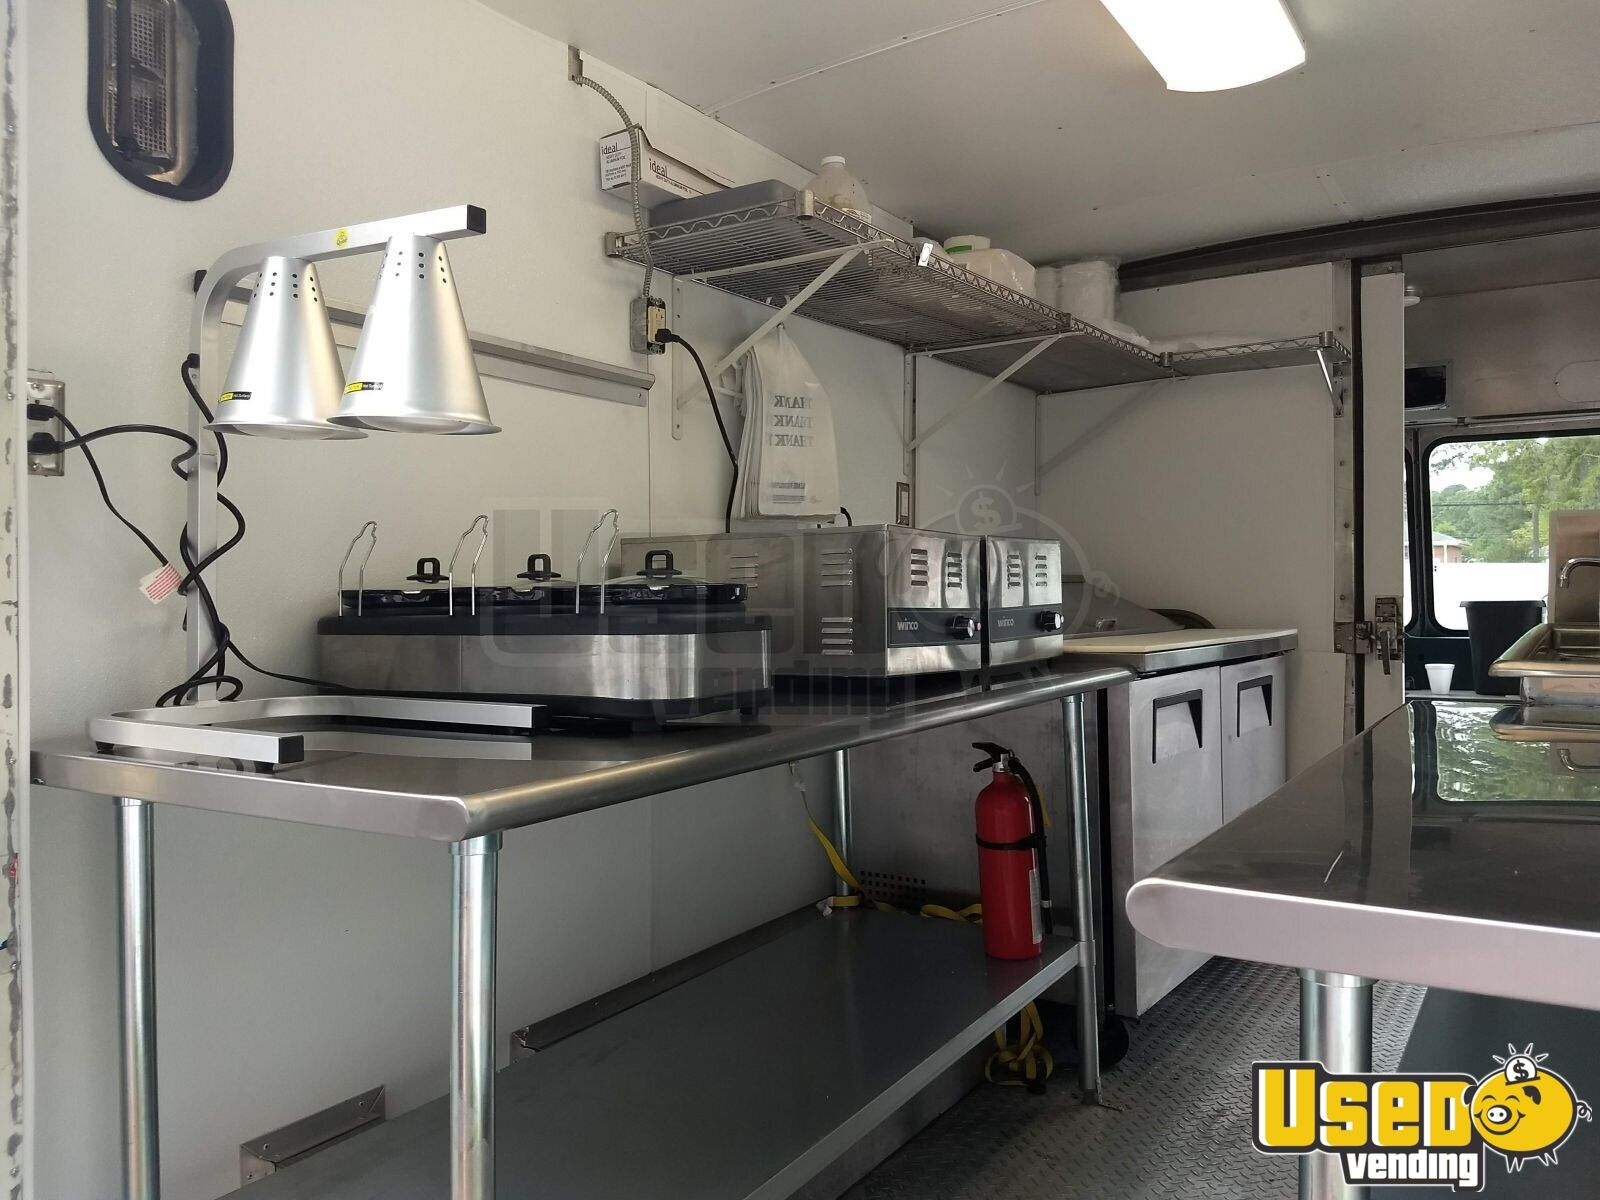 1987 Chev P-30 Food Truck Exterior Customer Counter Virginia Diesel Engine for Sale - 6